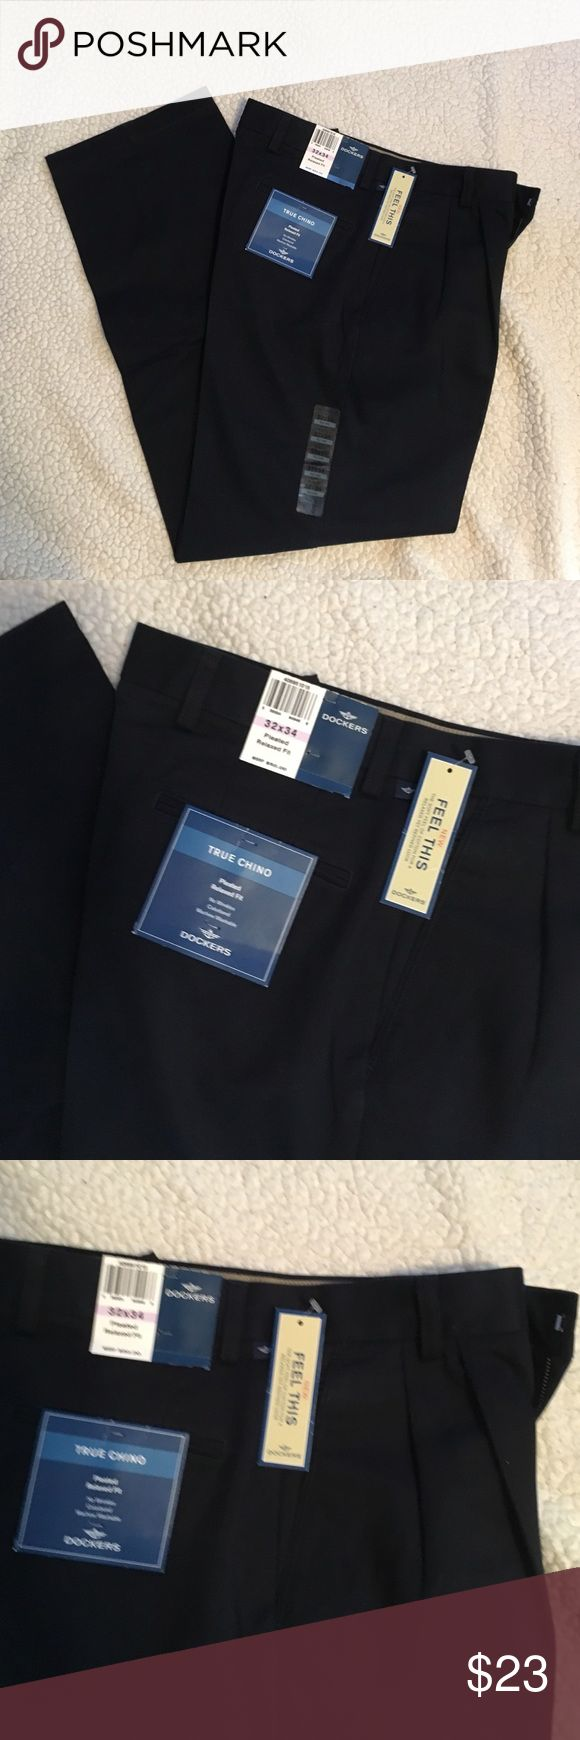 NWT Dockers Men's Chino Pleated Navy Pants 32x34 New Dockers Pleated relaxed fit navy blue dress pants size 32x34. These pants are 100% cotton, made in Bangladesh. Dockers Pants Dress